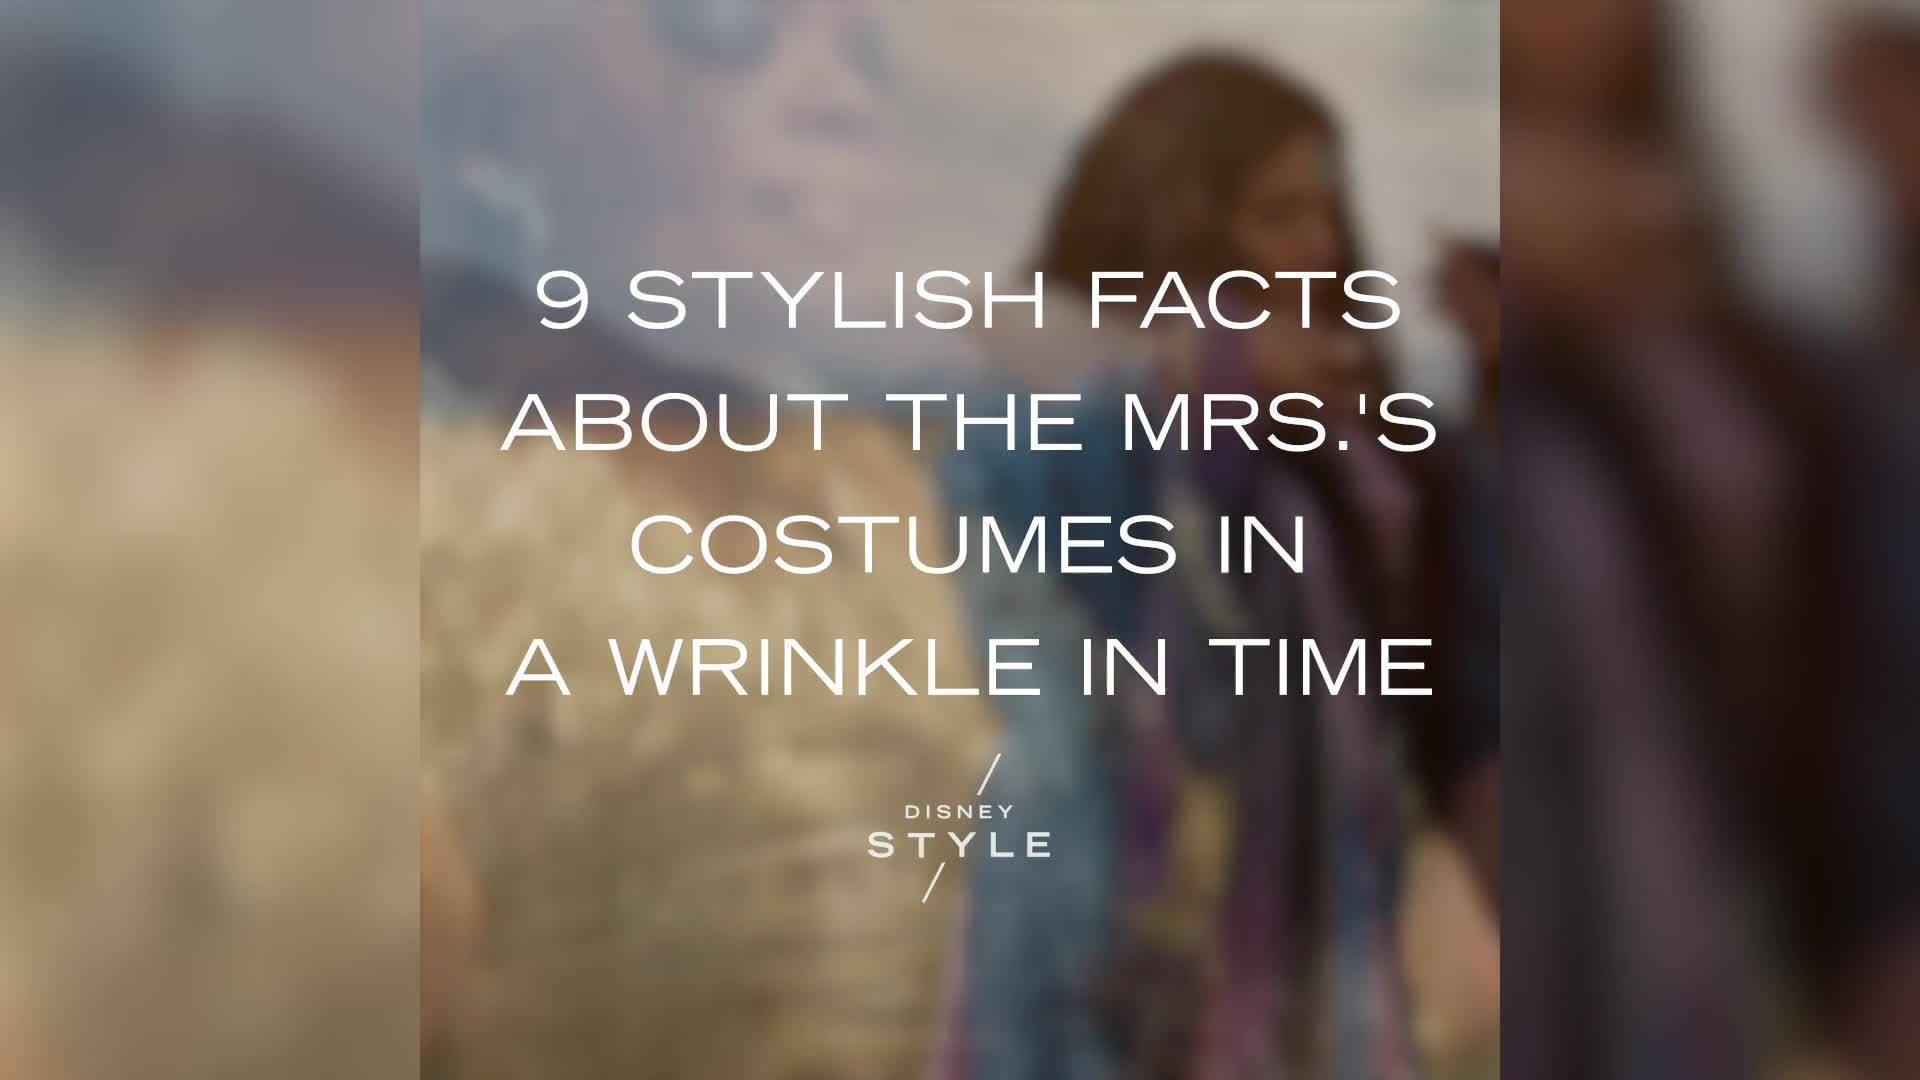 9 Stylish Facts About the Mrs.'s Costumes in A Wrinkle in Time | Fashion by Disney Style